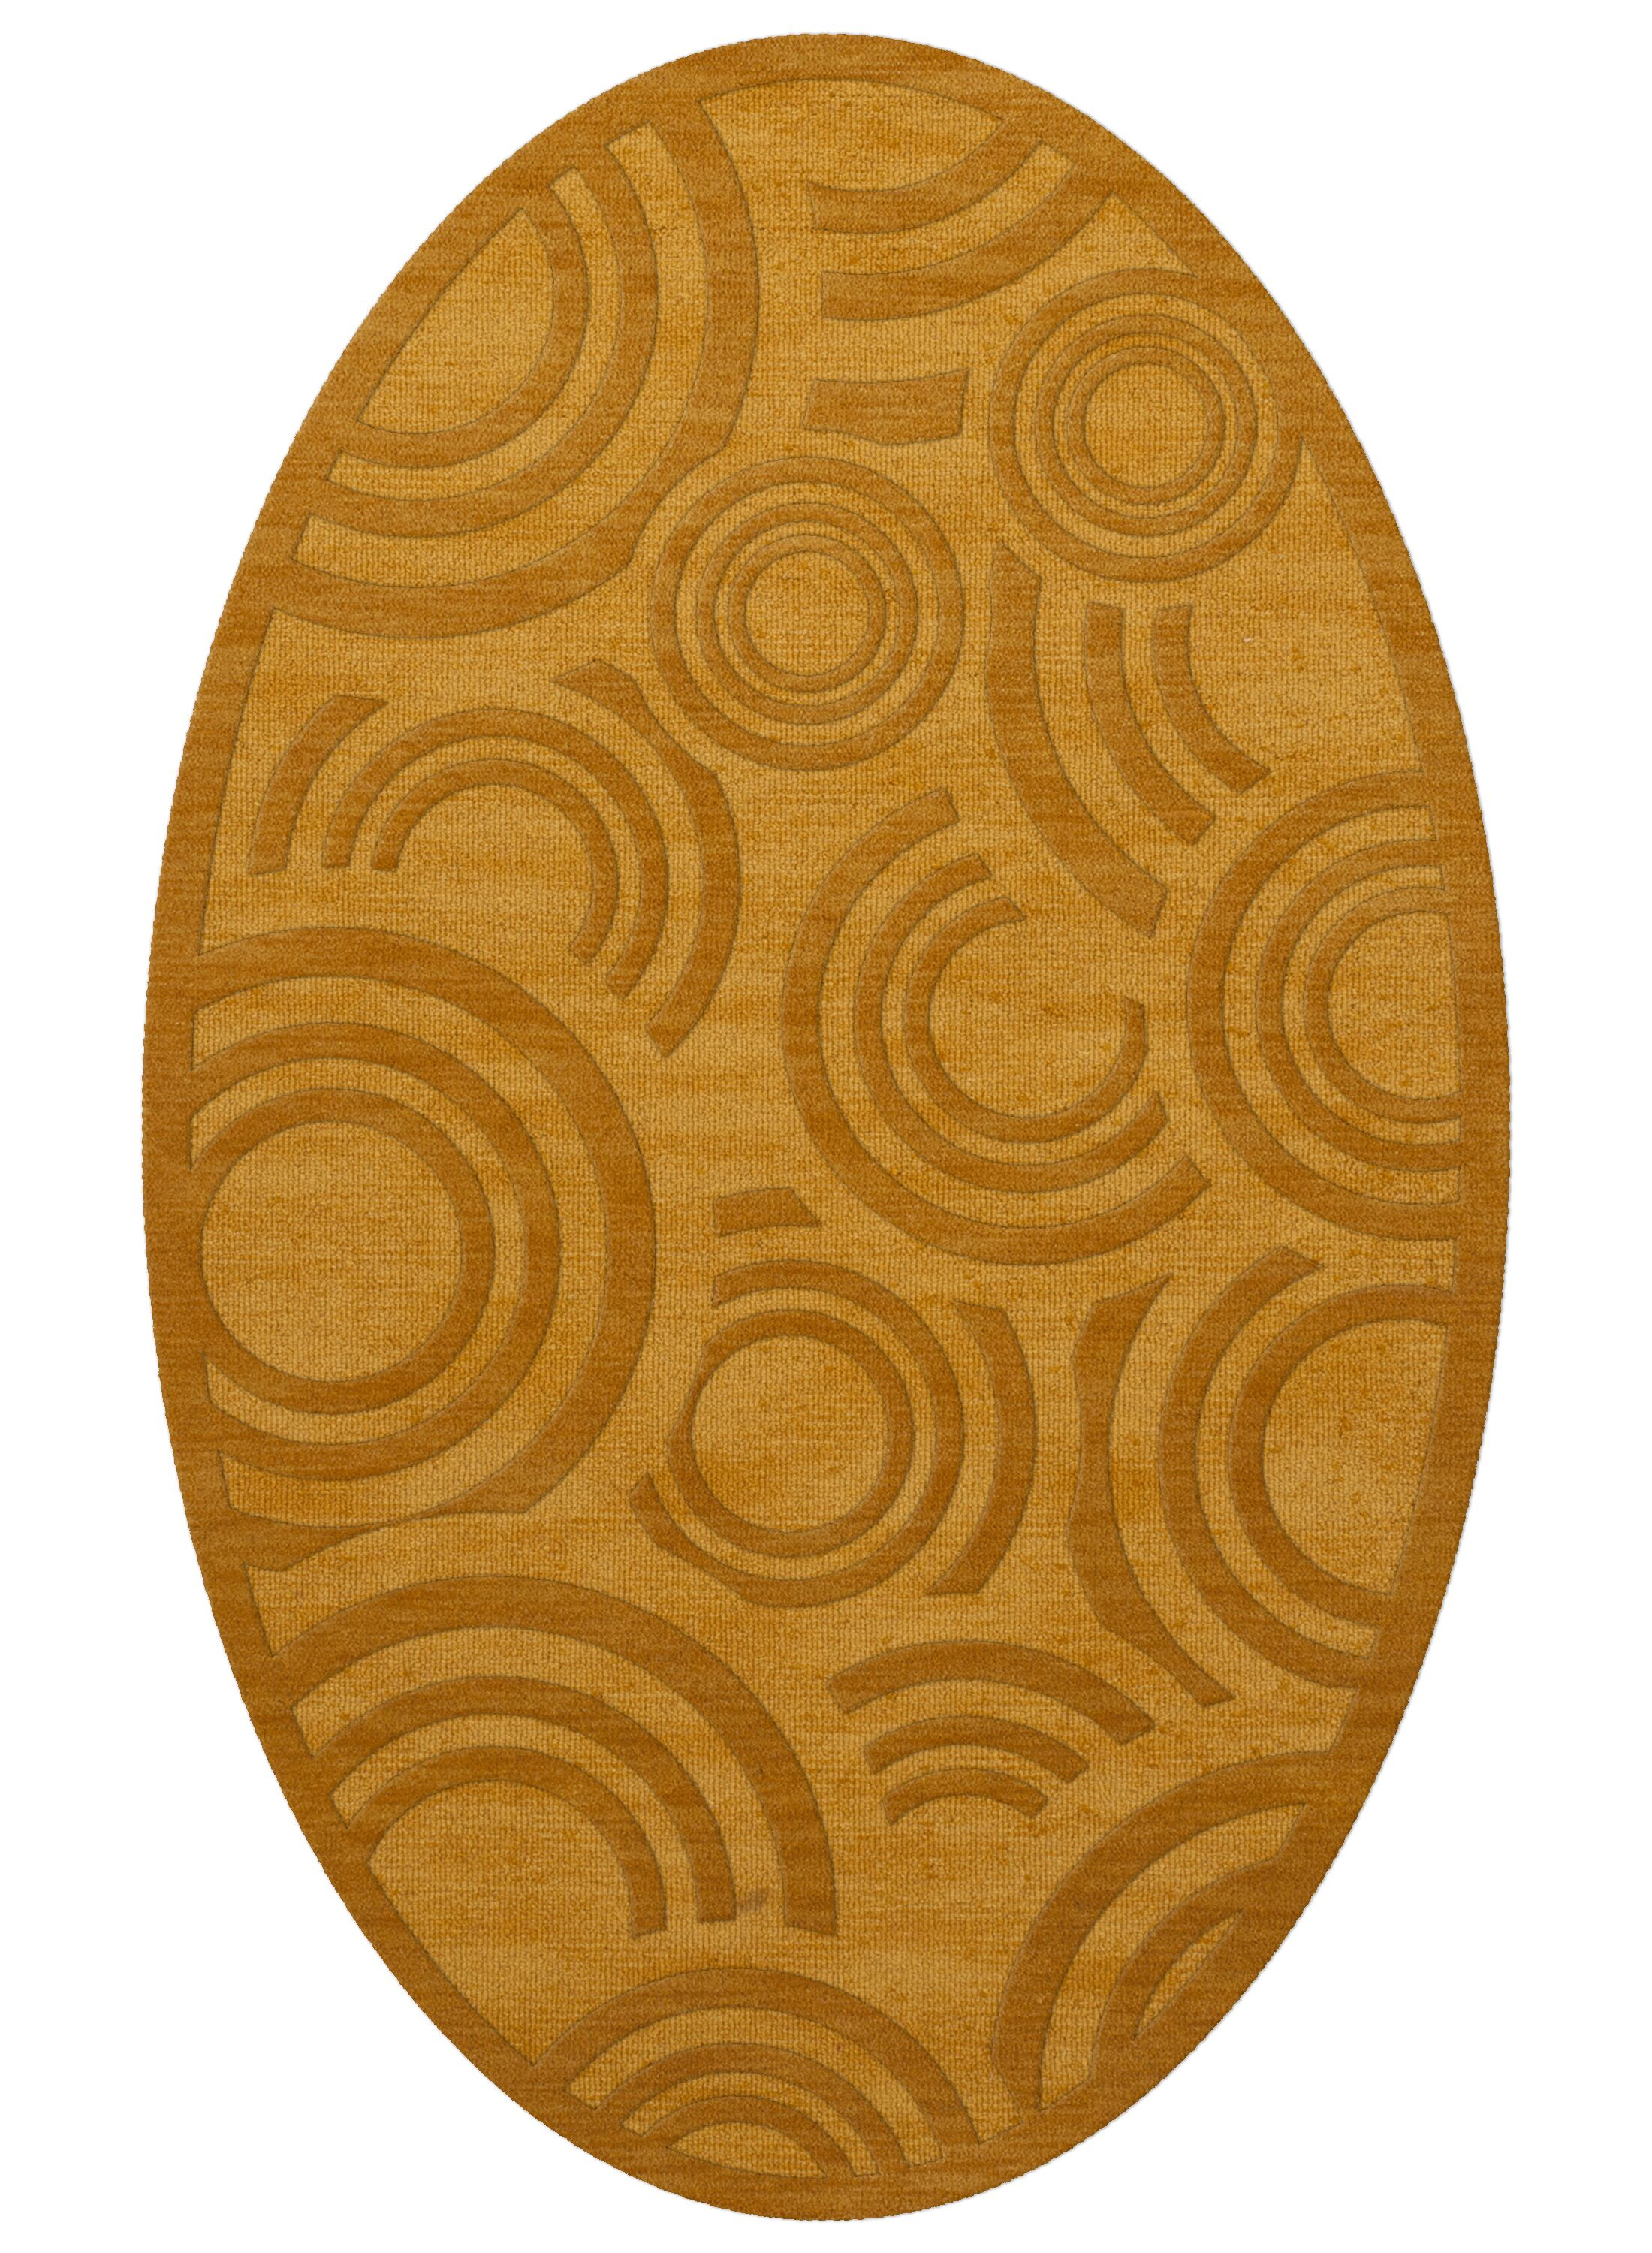 Dover Tufted Wool Butterscotch Area Rug Rug Size: Oval 3' x 5'